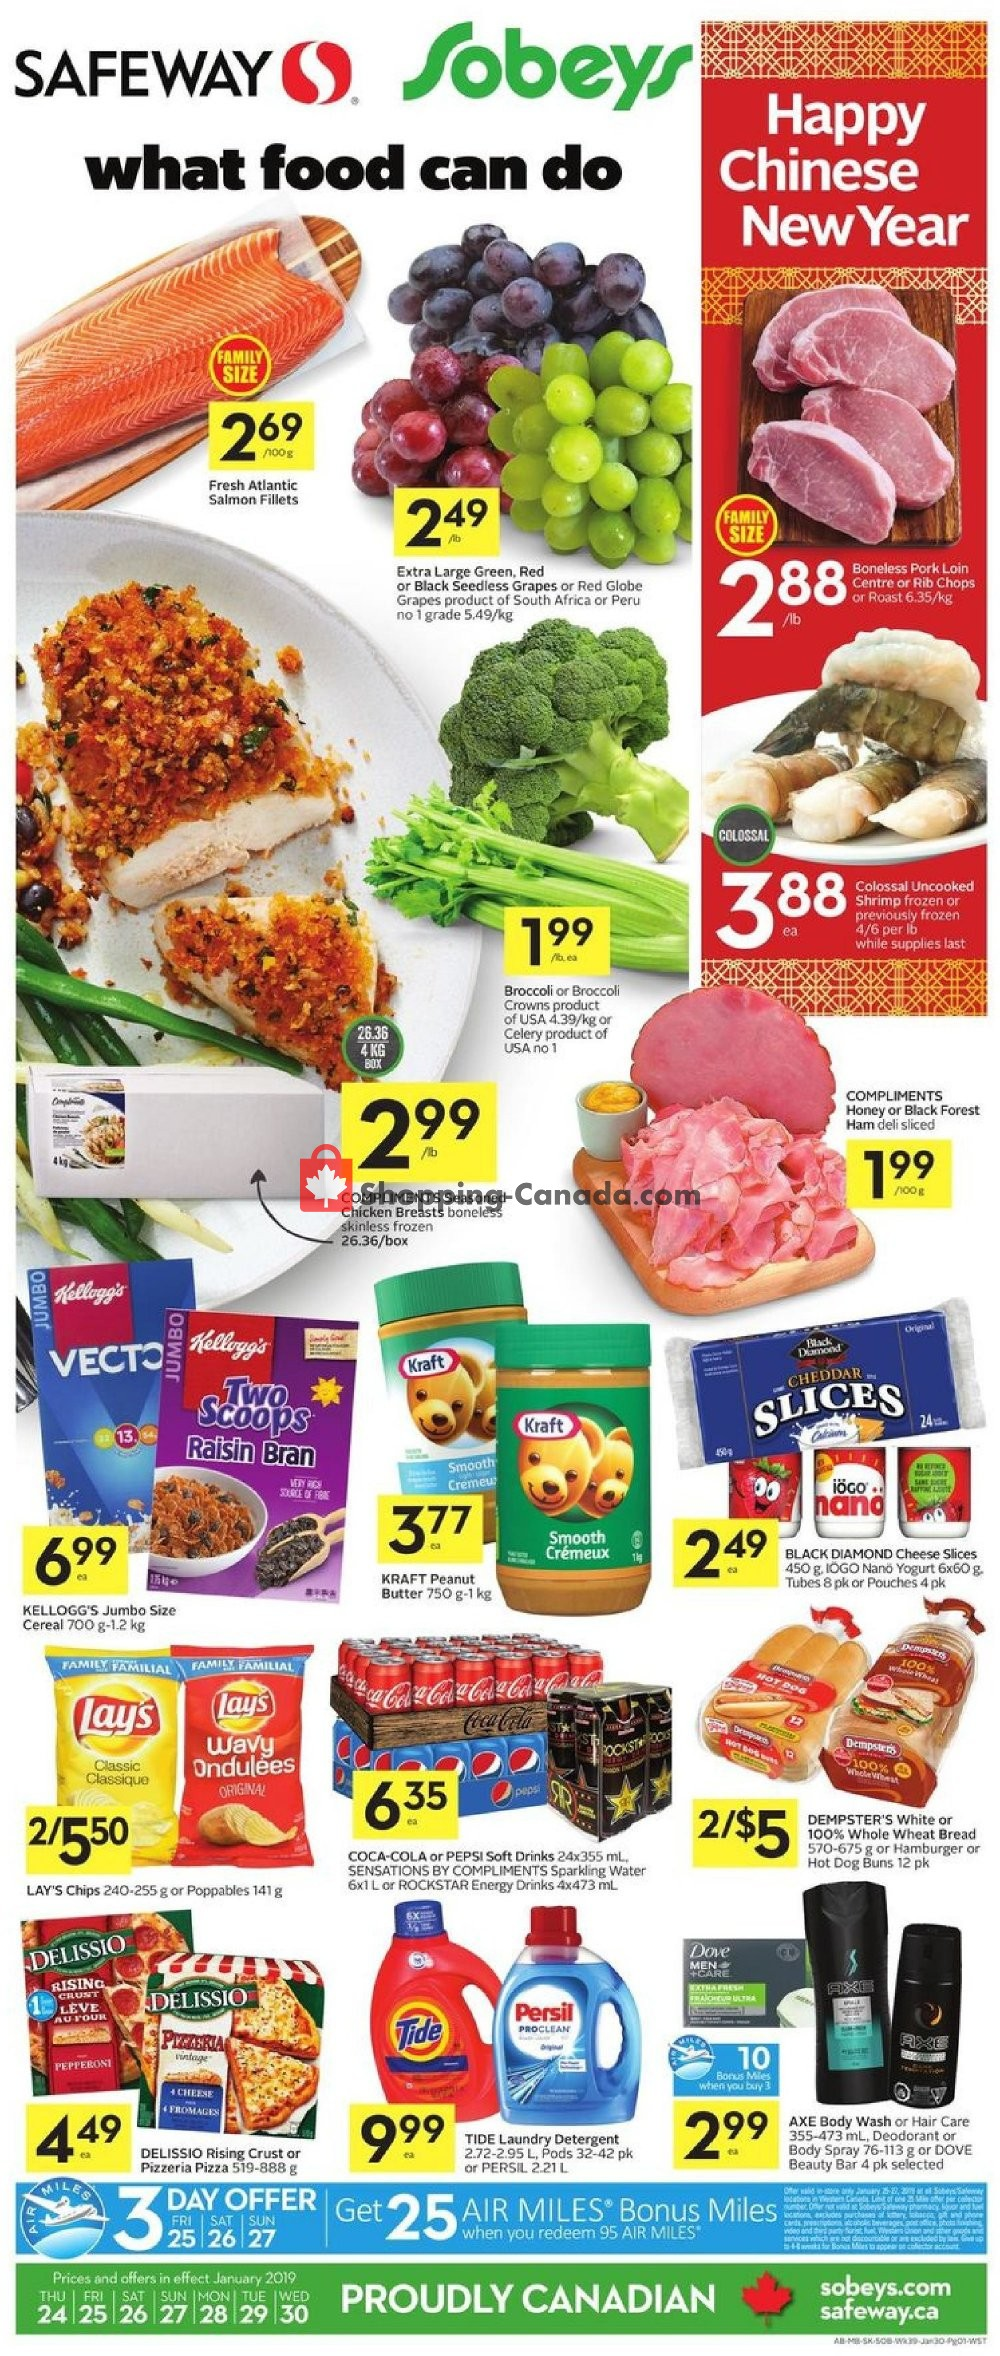 Flyer Safeway Canada - from Thursday January 24, 2019 to Wednesday January 30, 2019